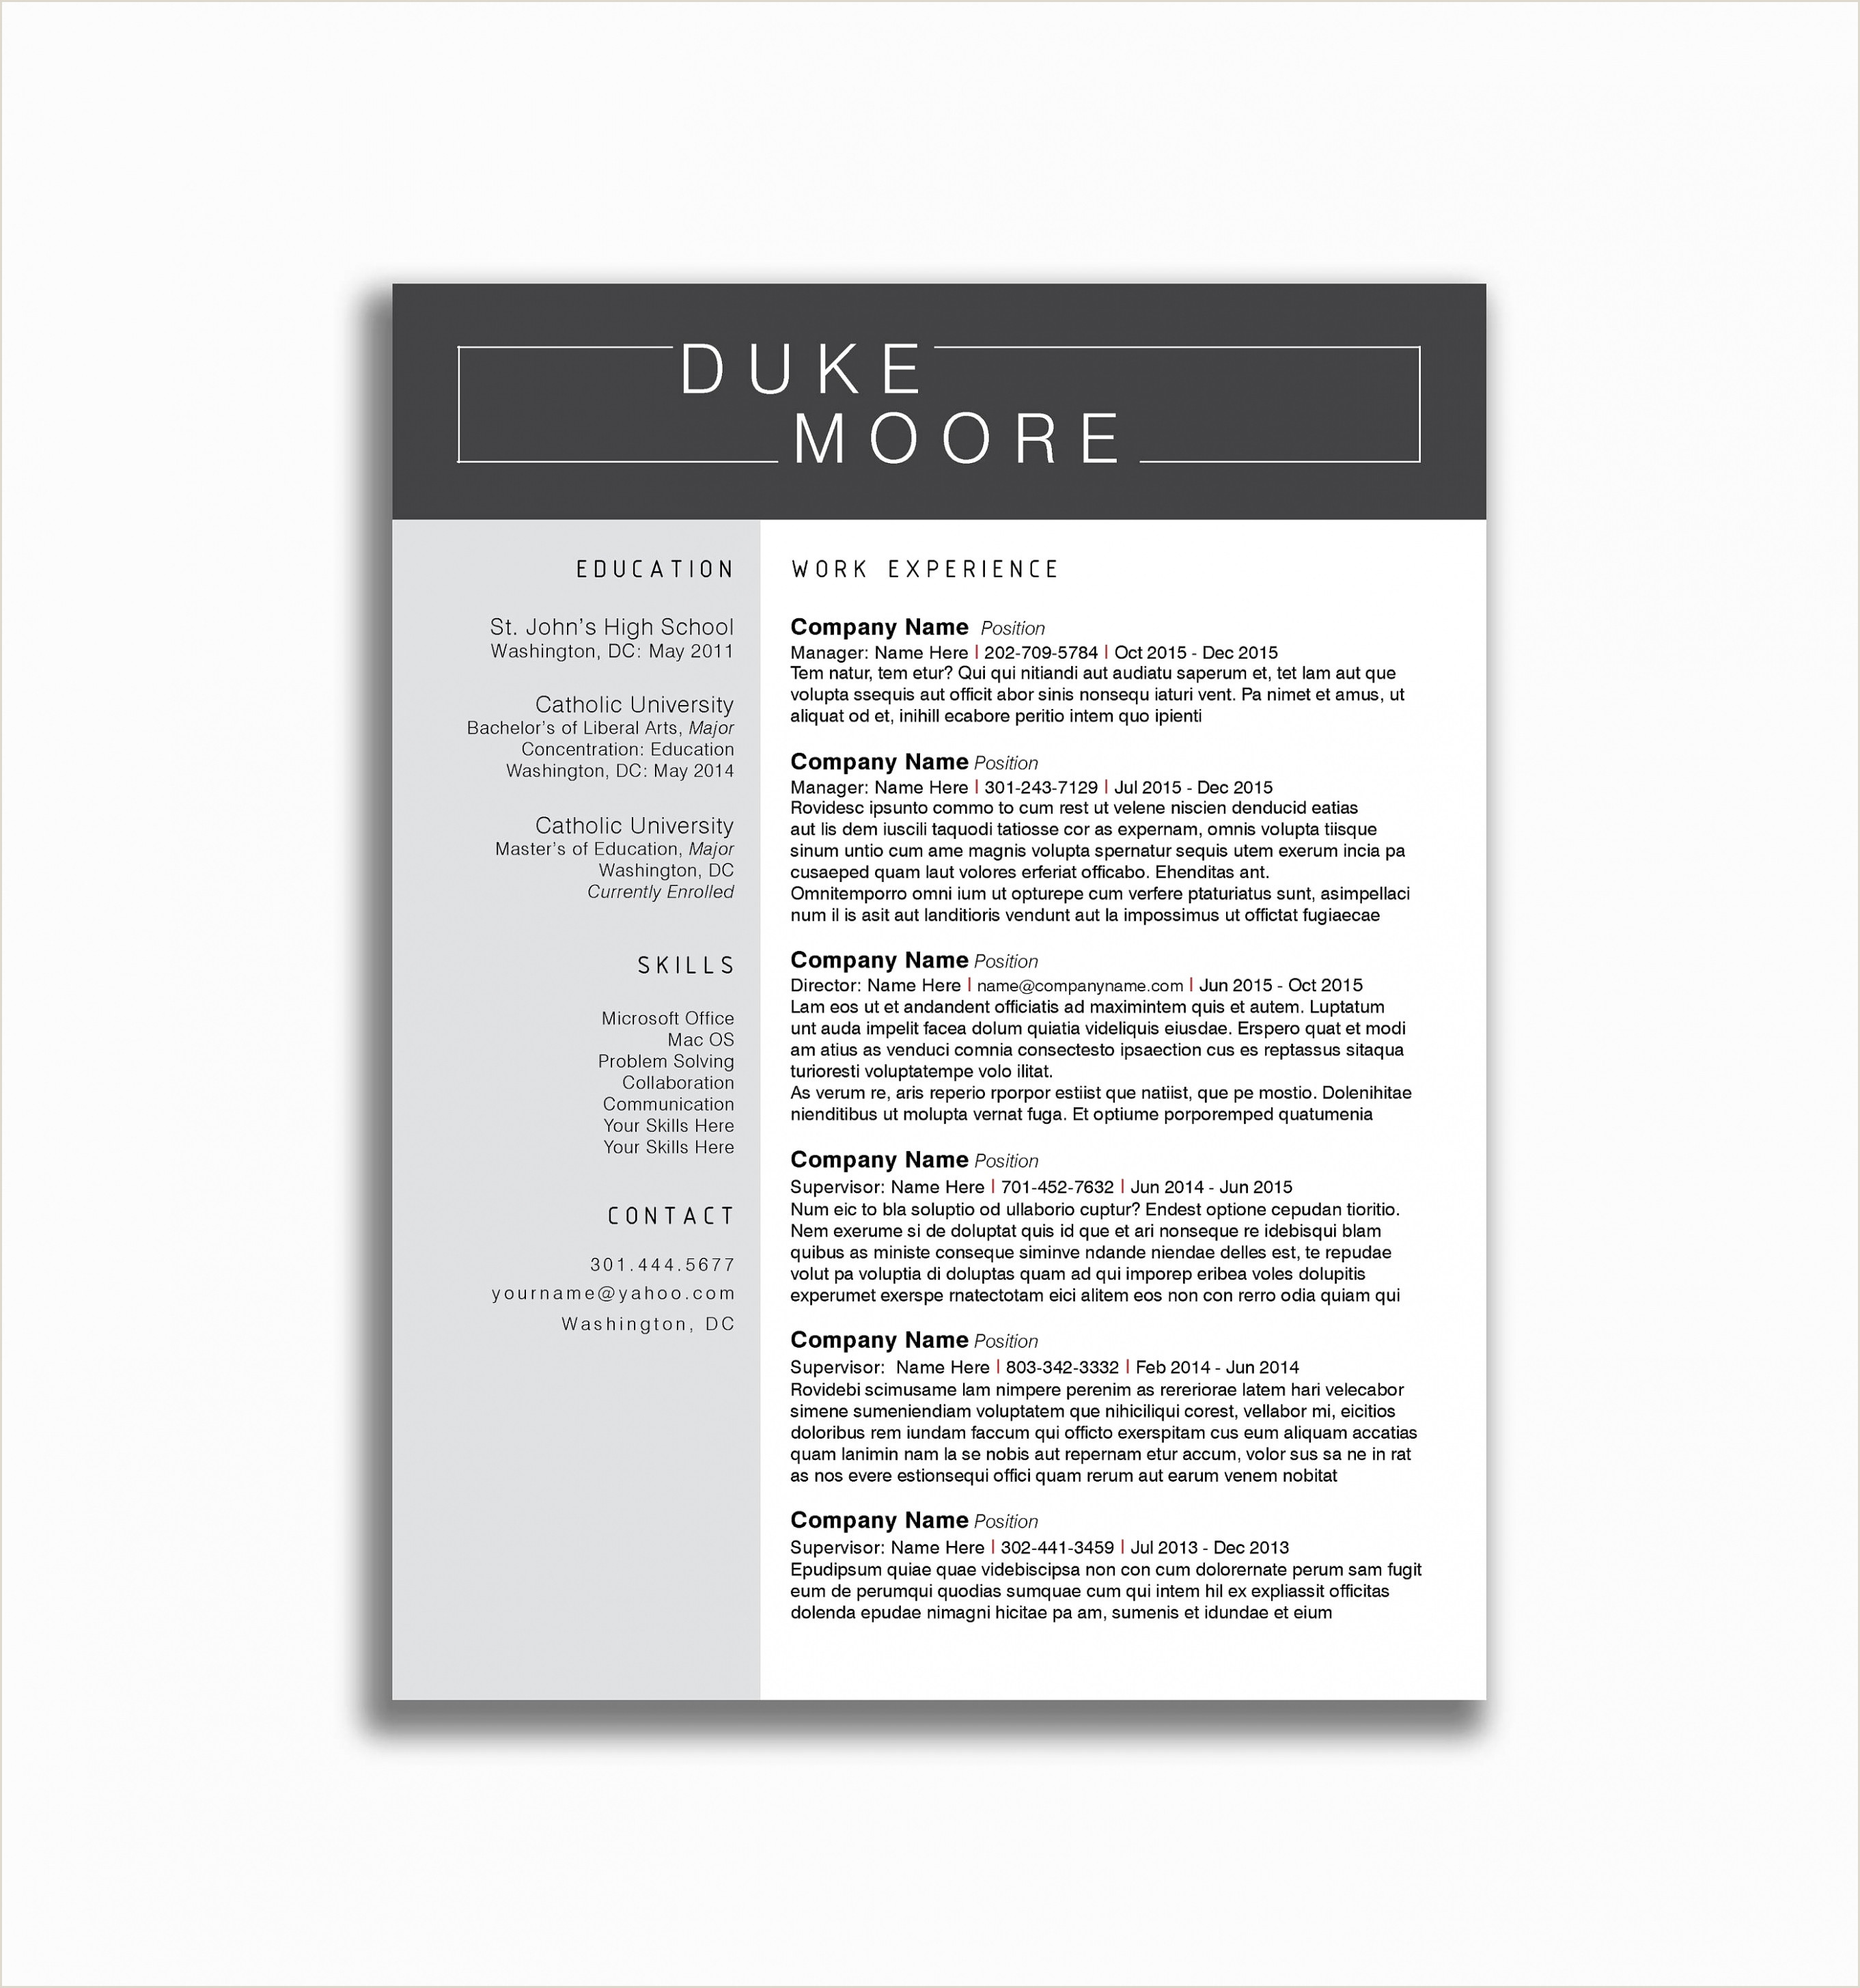 Professional Cv format In Ms Word with Photo Retail Sales Manager Resume Template Operations Templates